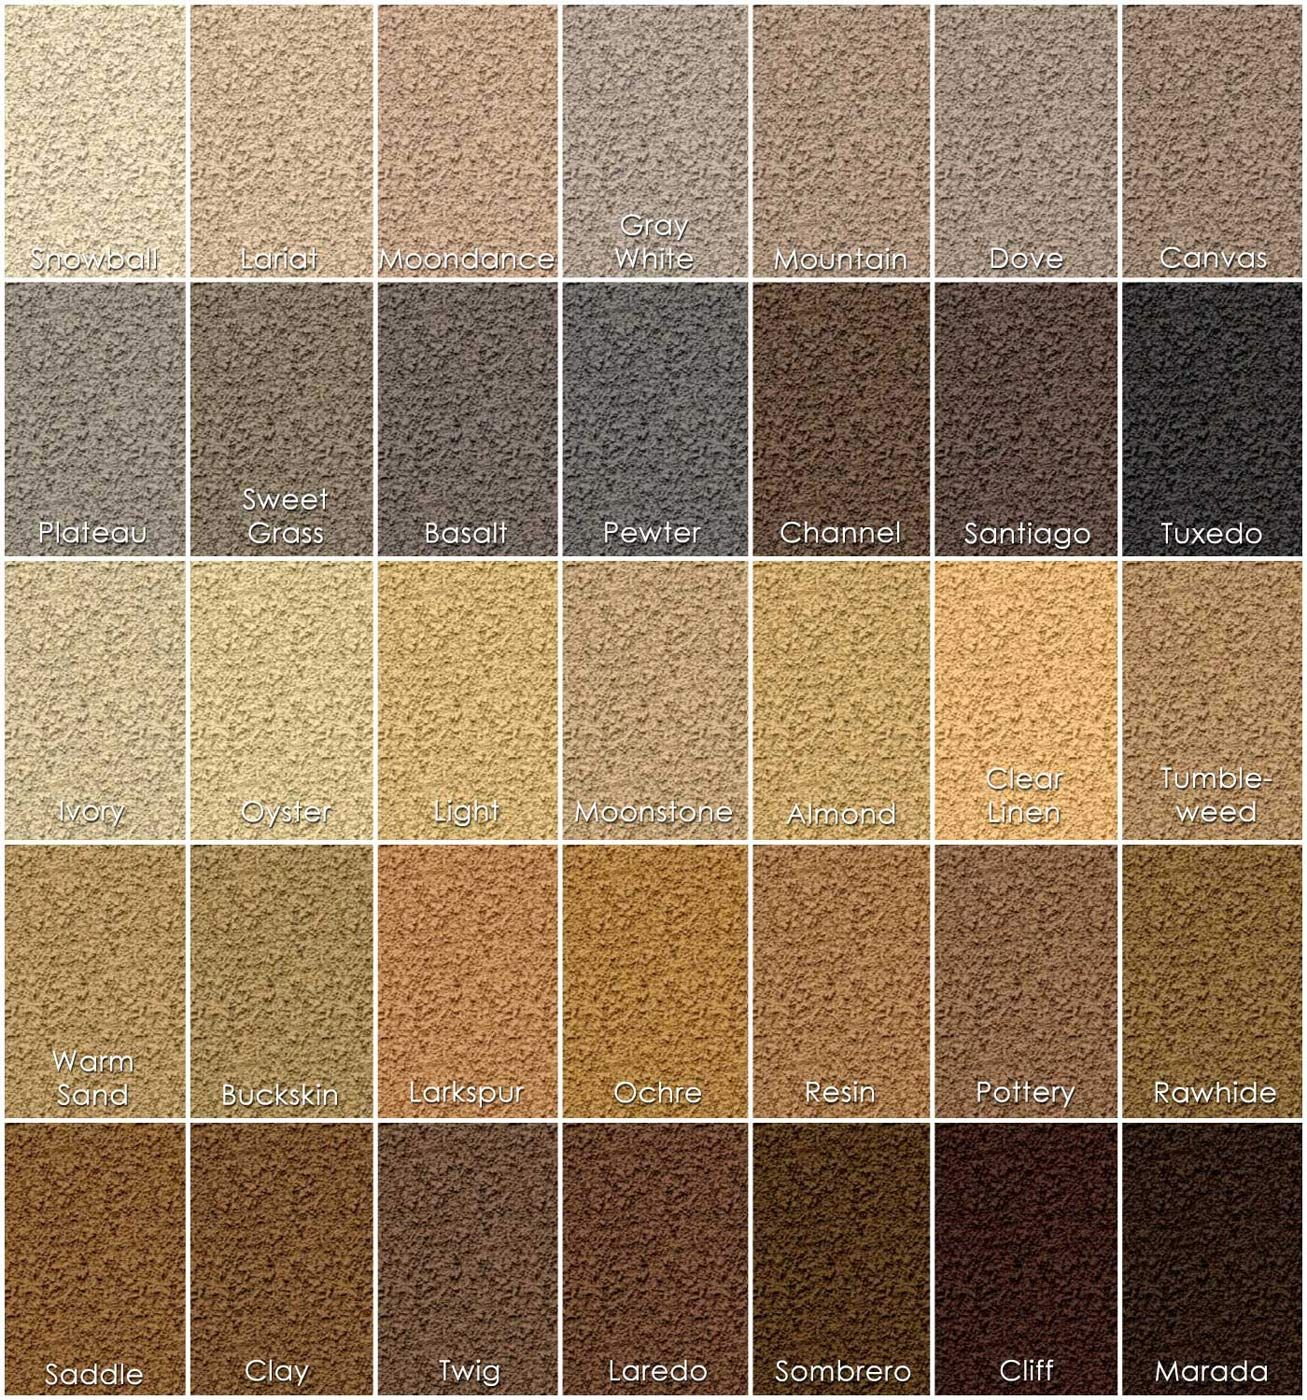 Mod The Sims I Like It Rough Stucco Walls Pool And Patio Design Pinterest The Sims